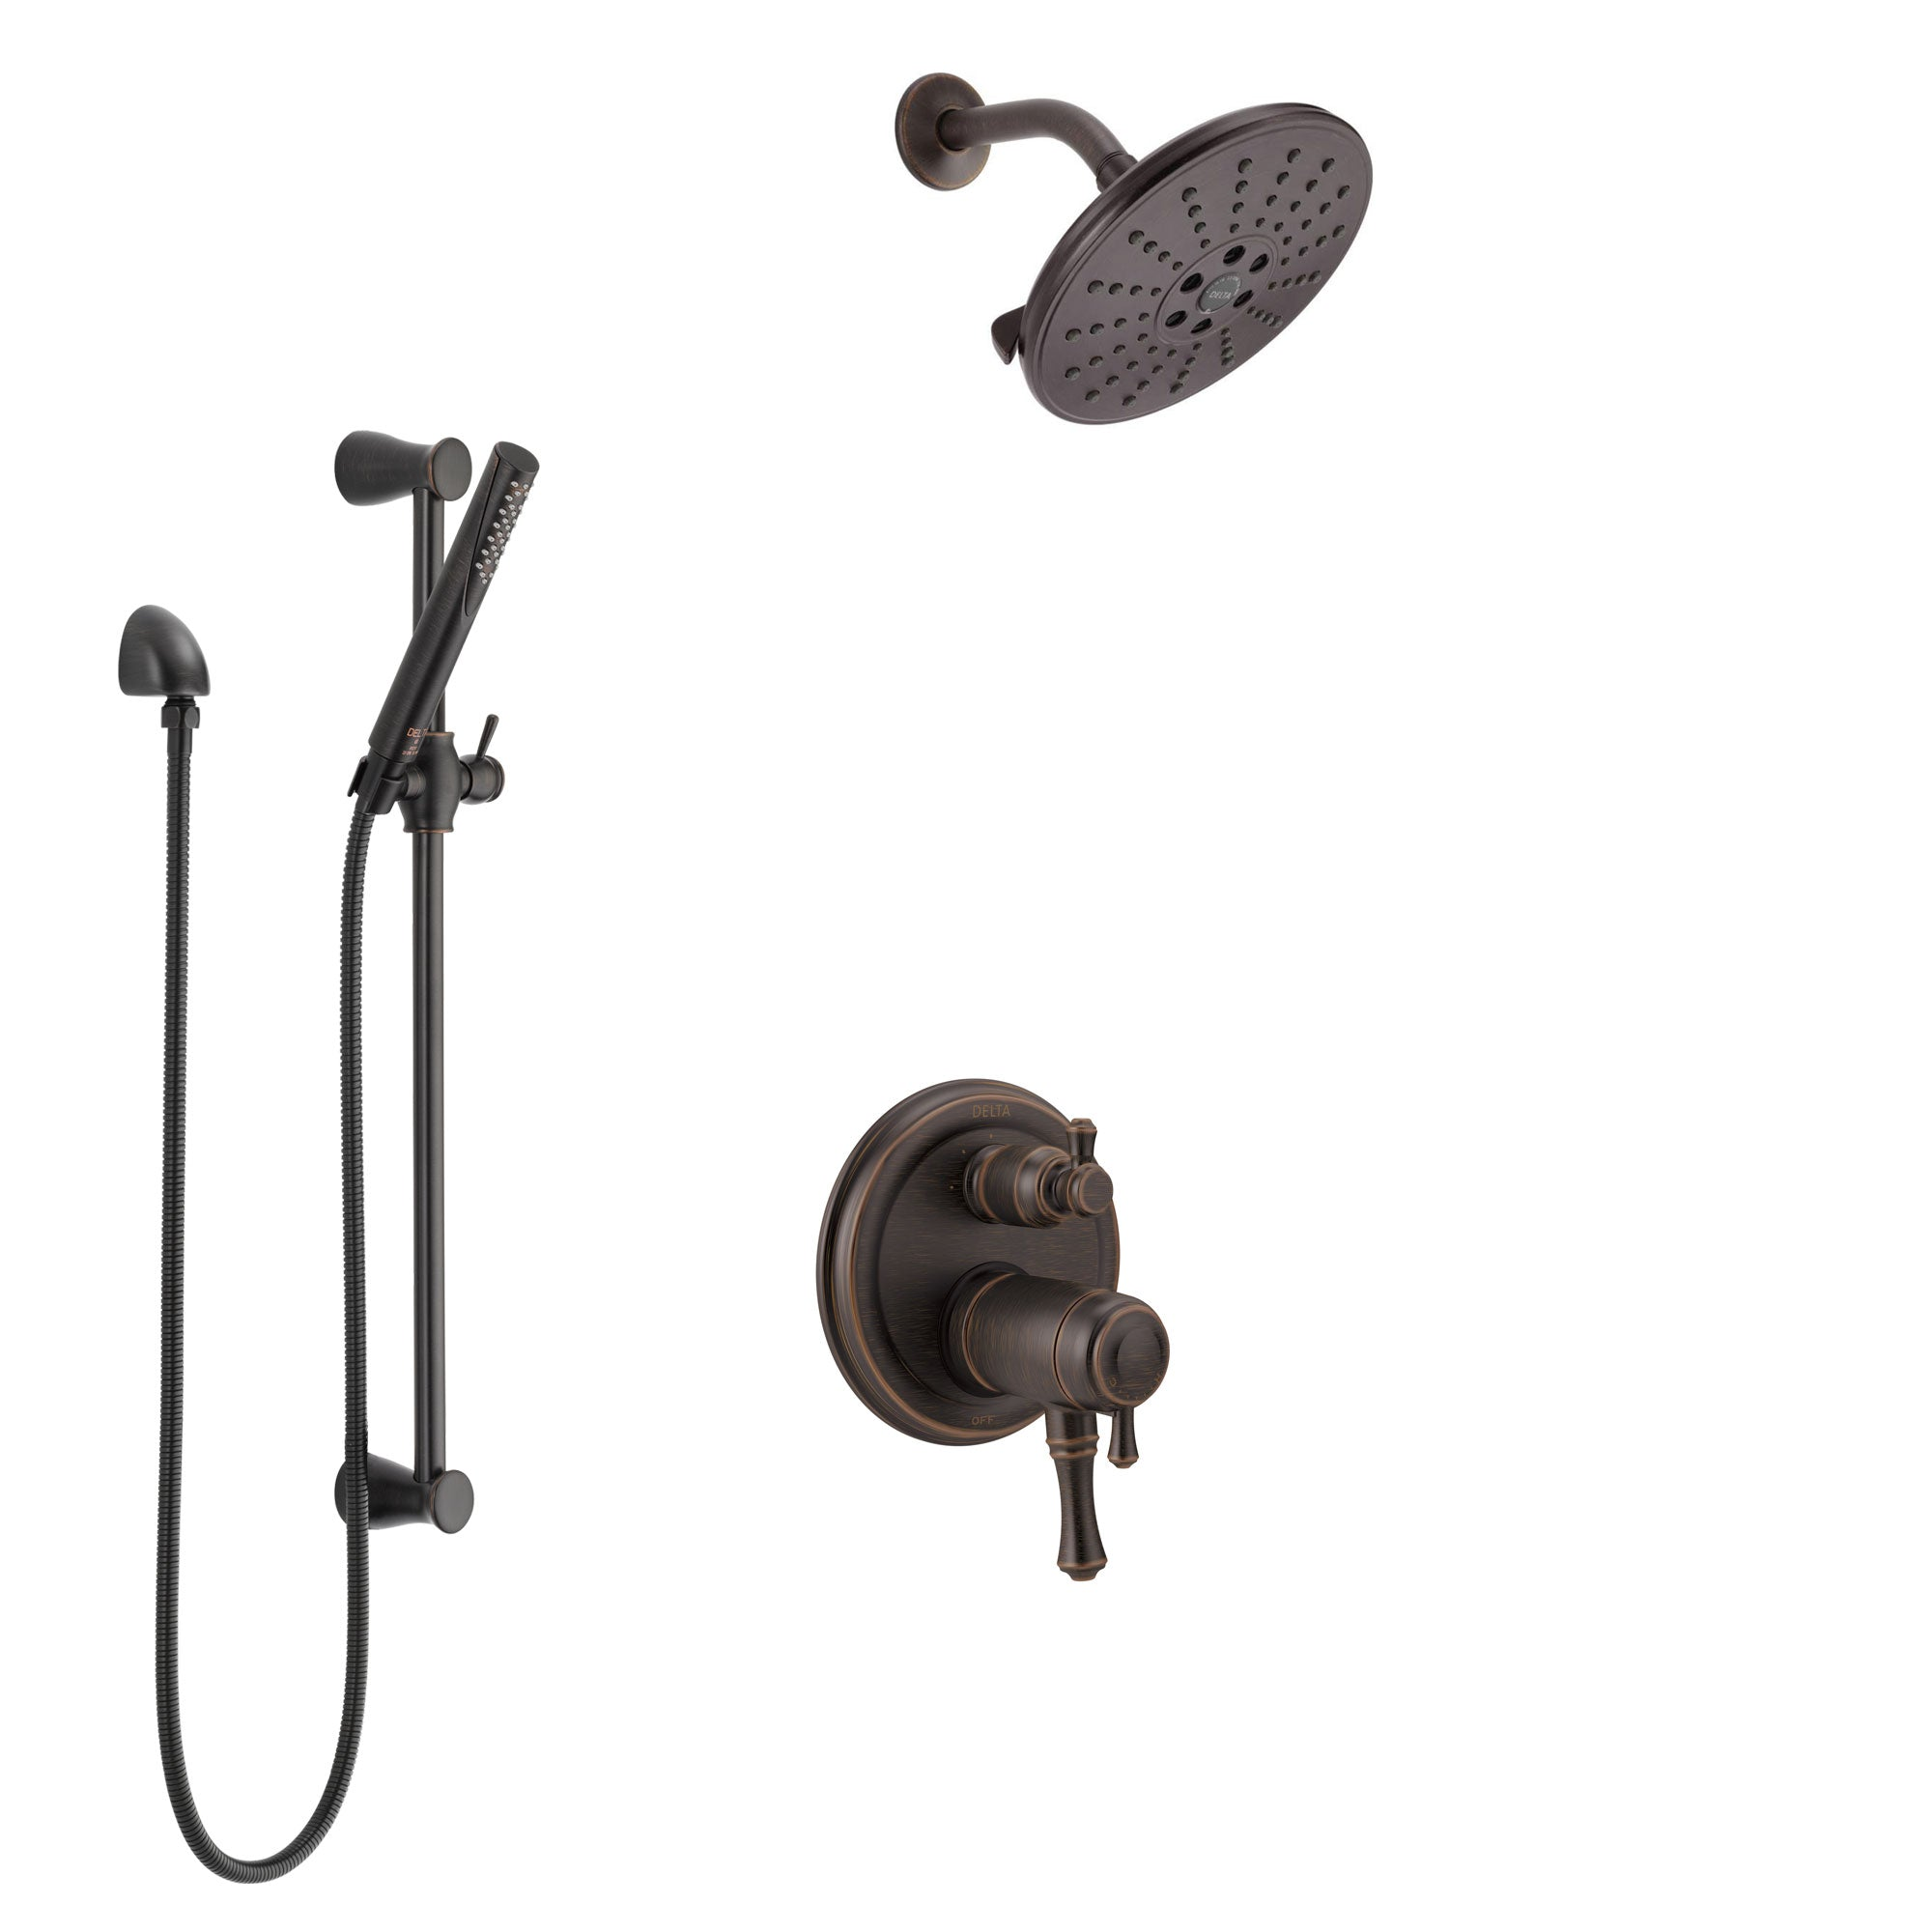 Delta Cassidy Venetian Bronze Shower System with Dual Thermostatic Control Handle, Integrated Diverter, Showerhead, and Hand Shower SS27T897RB8